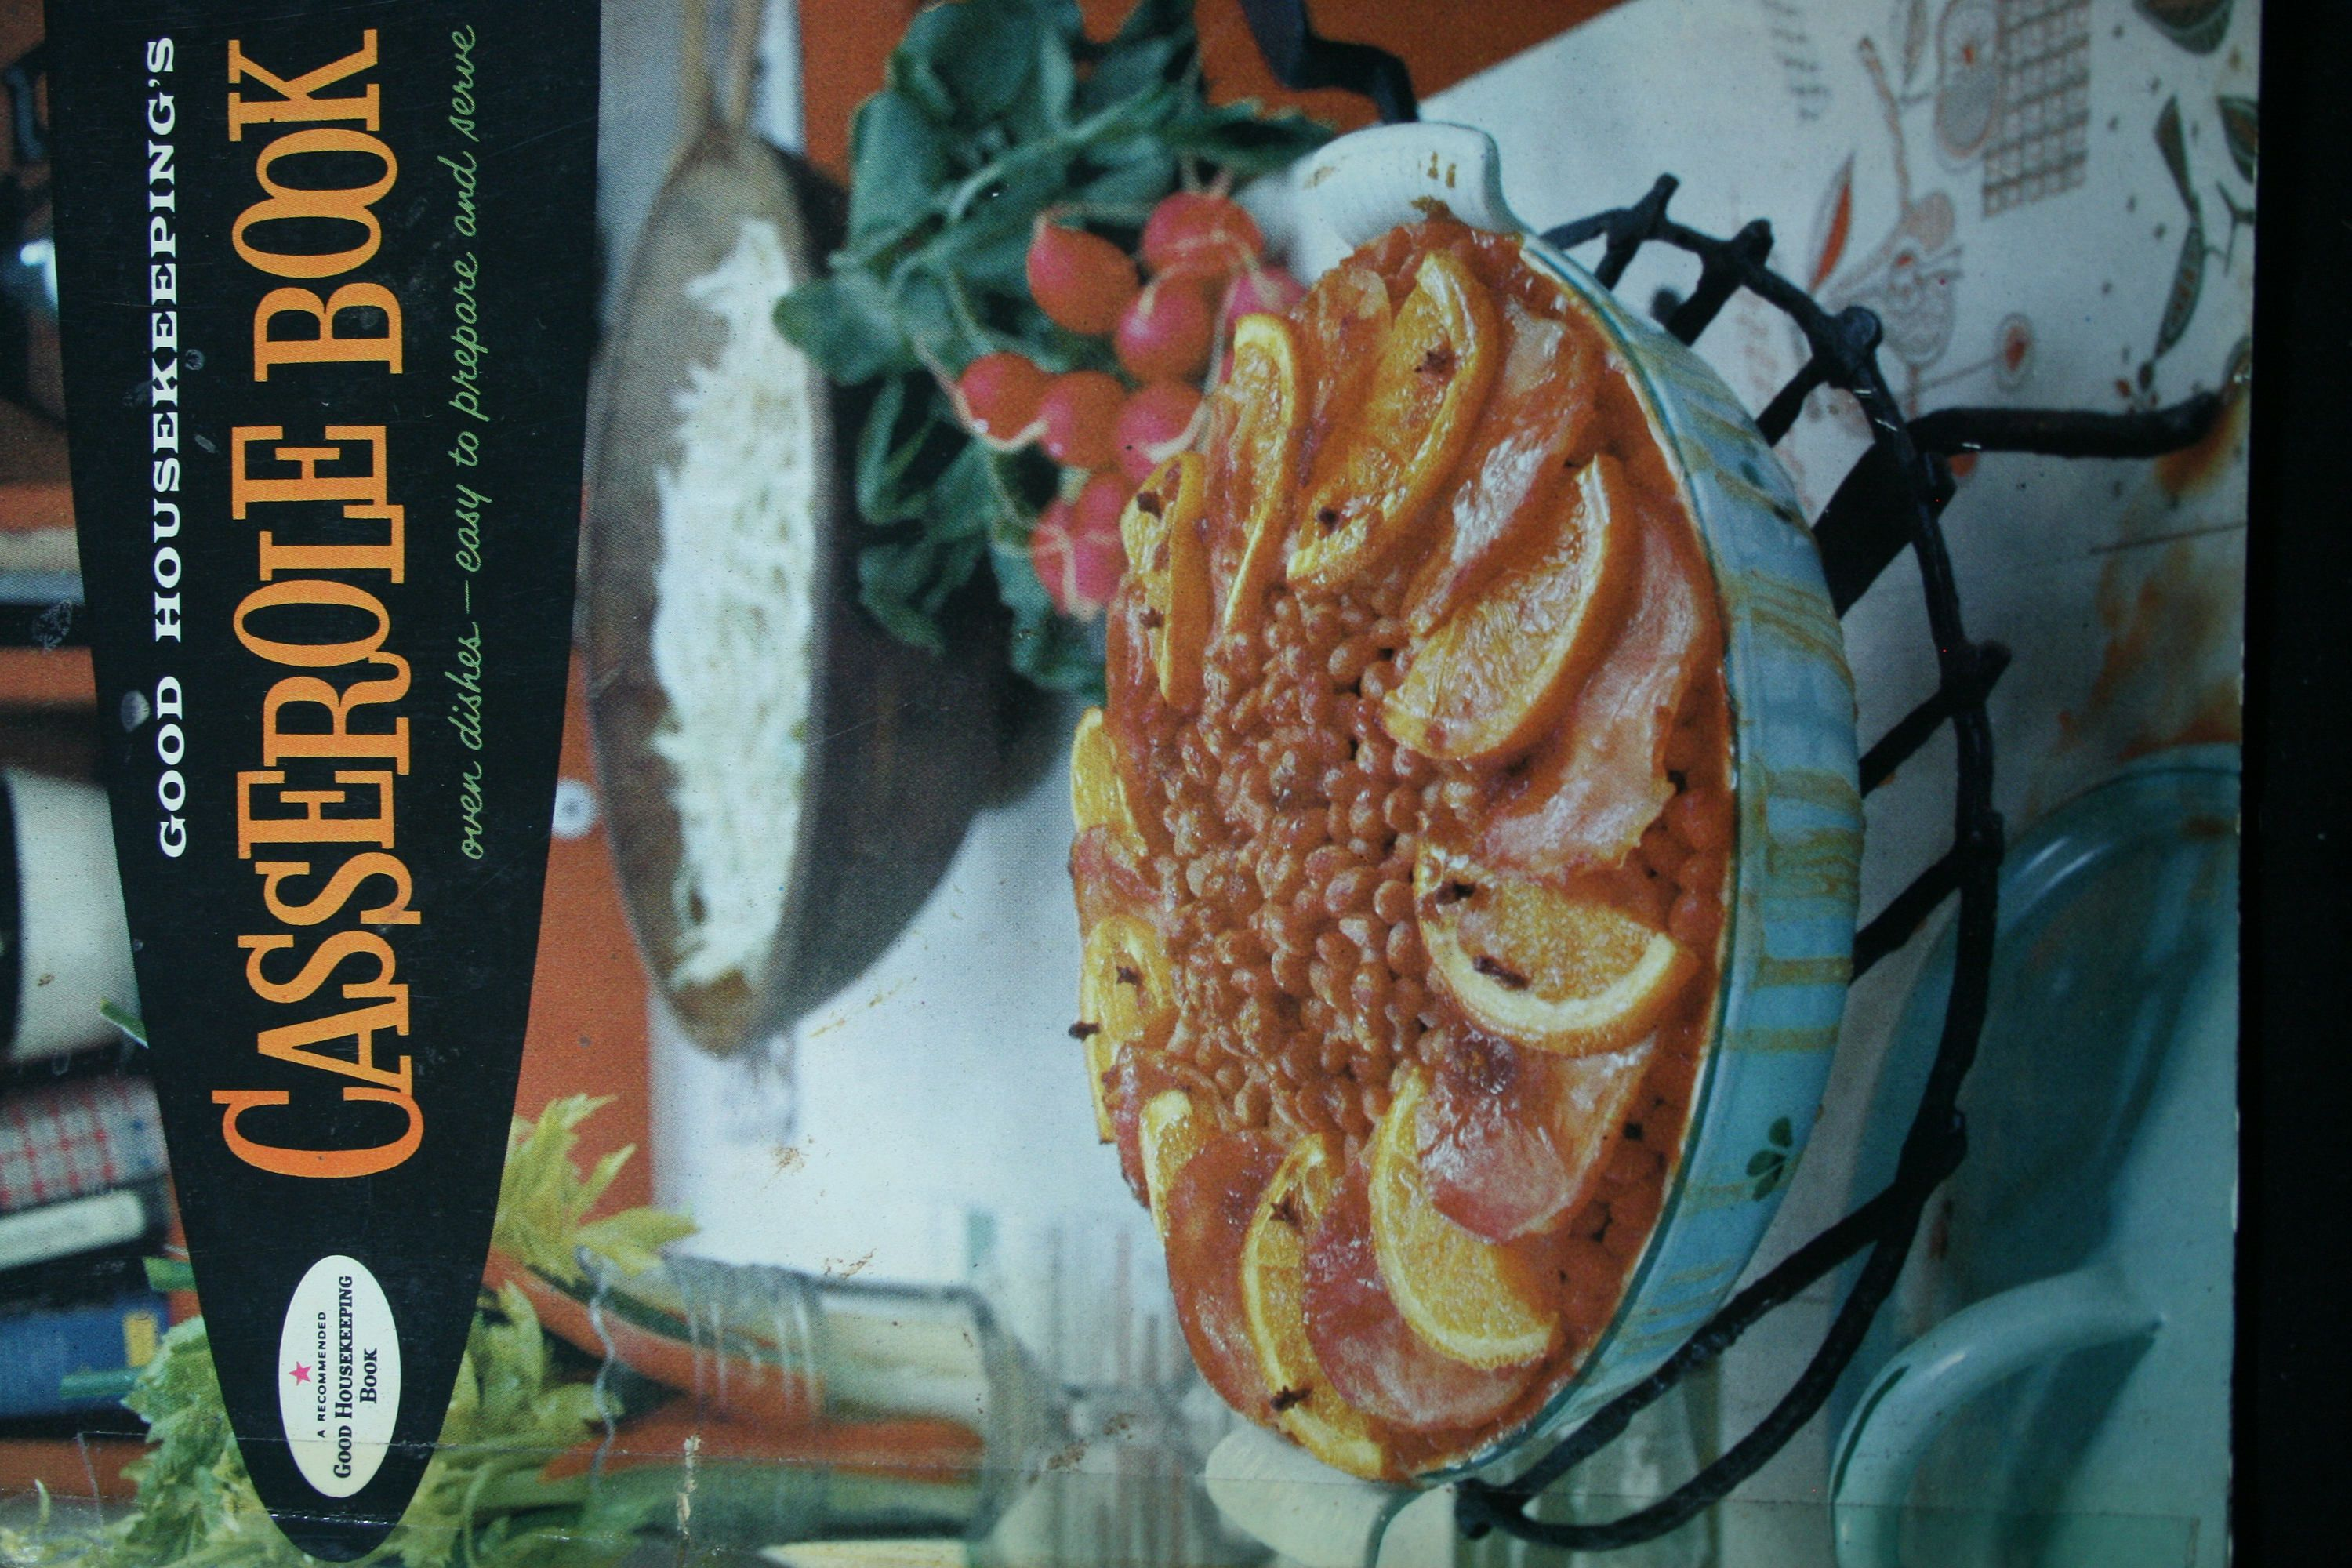 Good House Keeping Vintage Casserole Cookbook, Oven Dishes, Vintage Cookbook, 1958, Recipes, A-250 by ItallADSup on Etsy